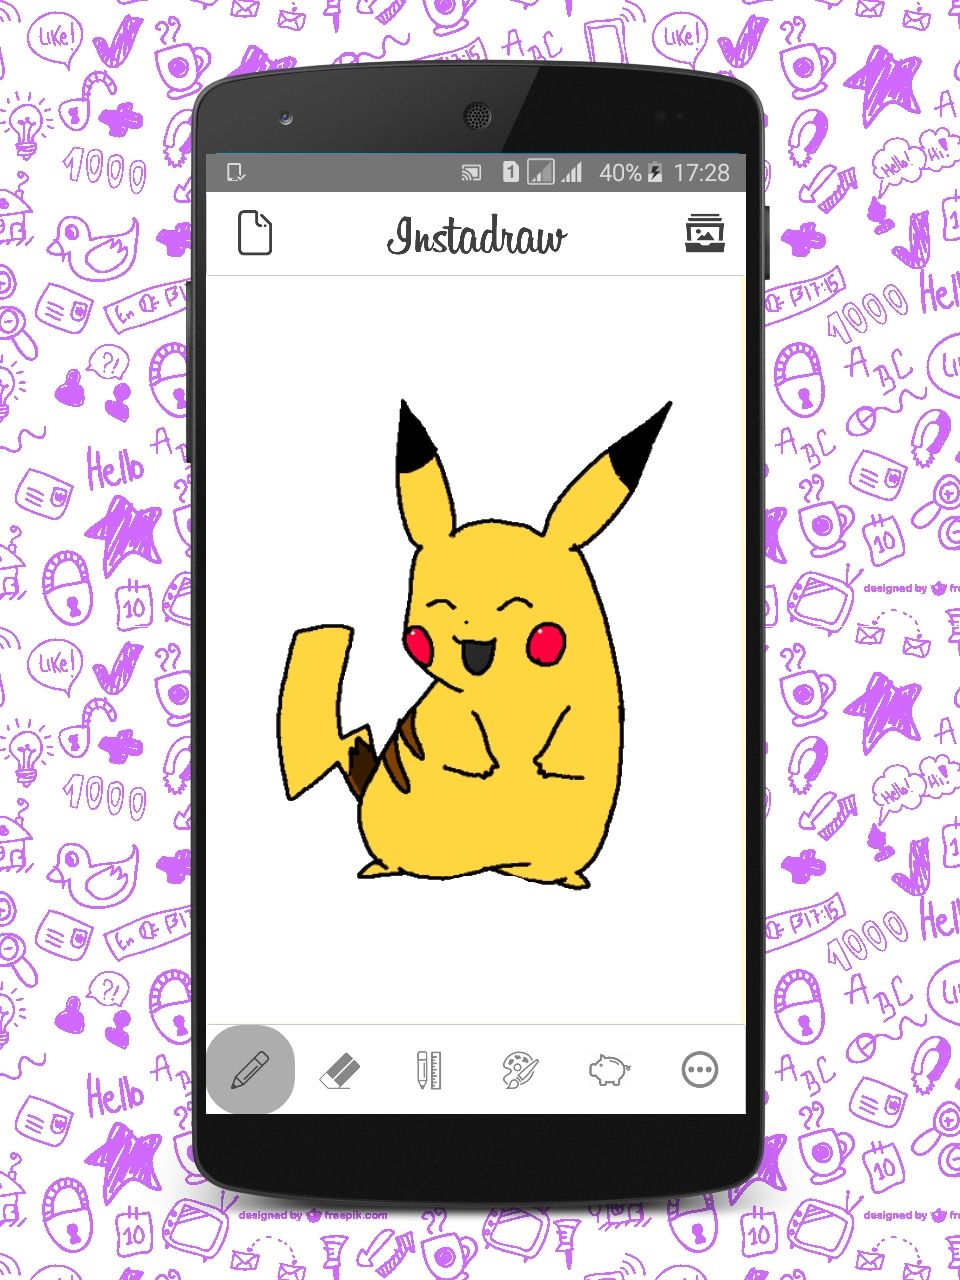 Instadraw - Android Drawing App Template Screenshot 2